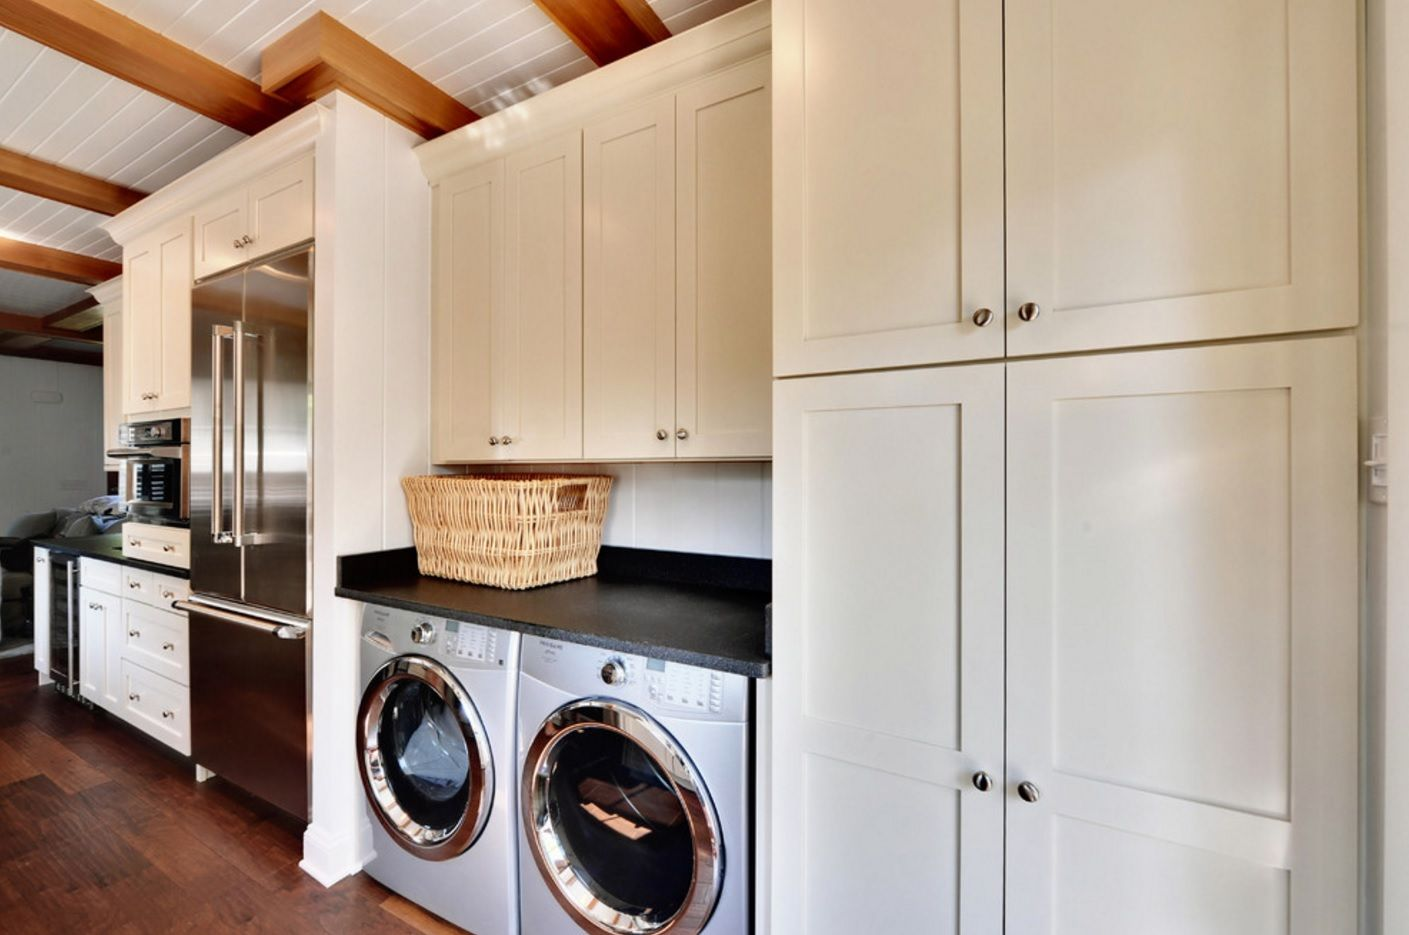 Open layout of the kitchen with coupled washing and drying machines